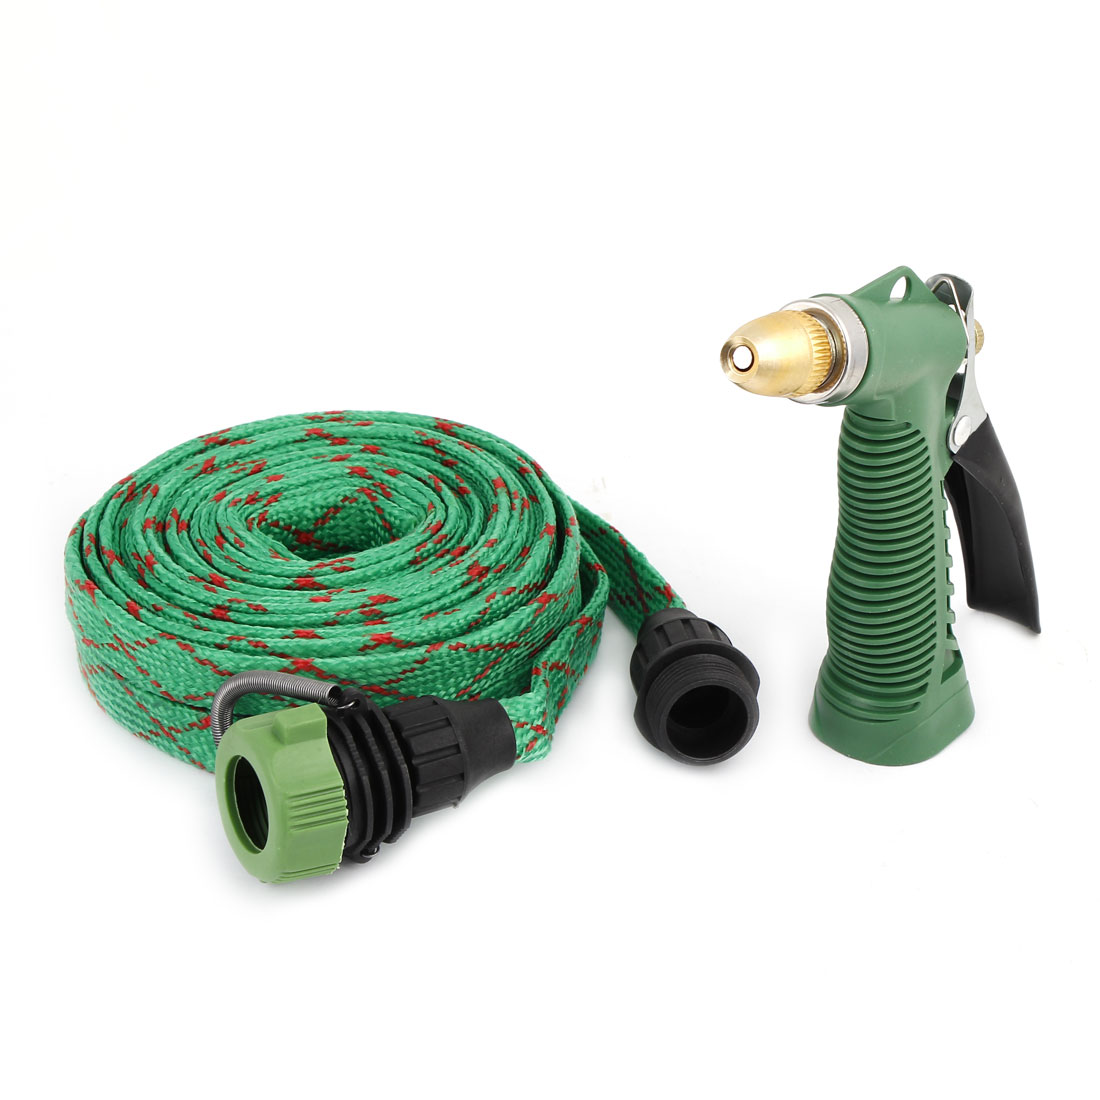 5M 16ft Long Nylon Hose Garden Watering Car Washing Gun Sprayer Green